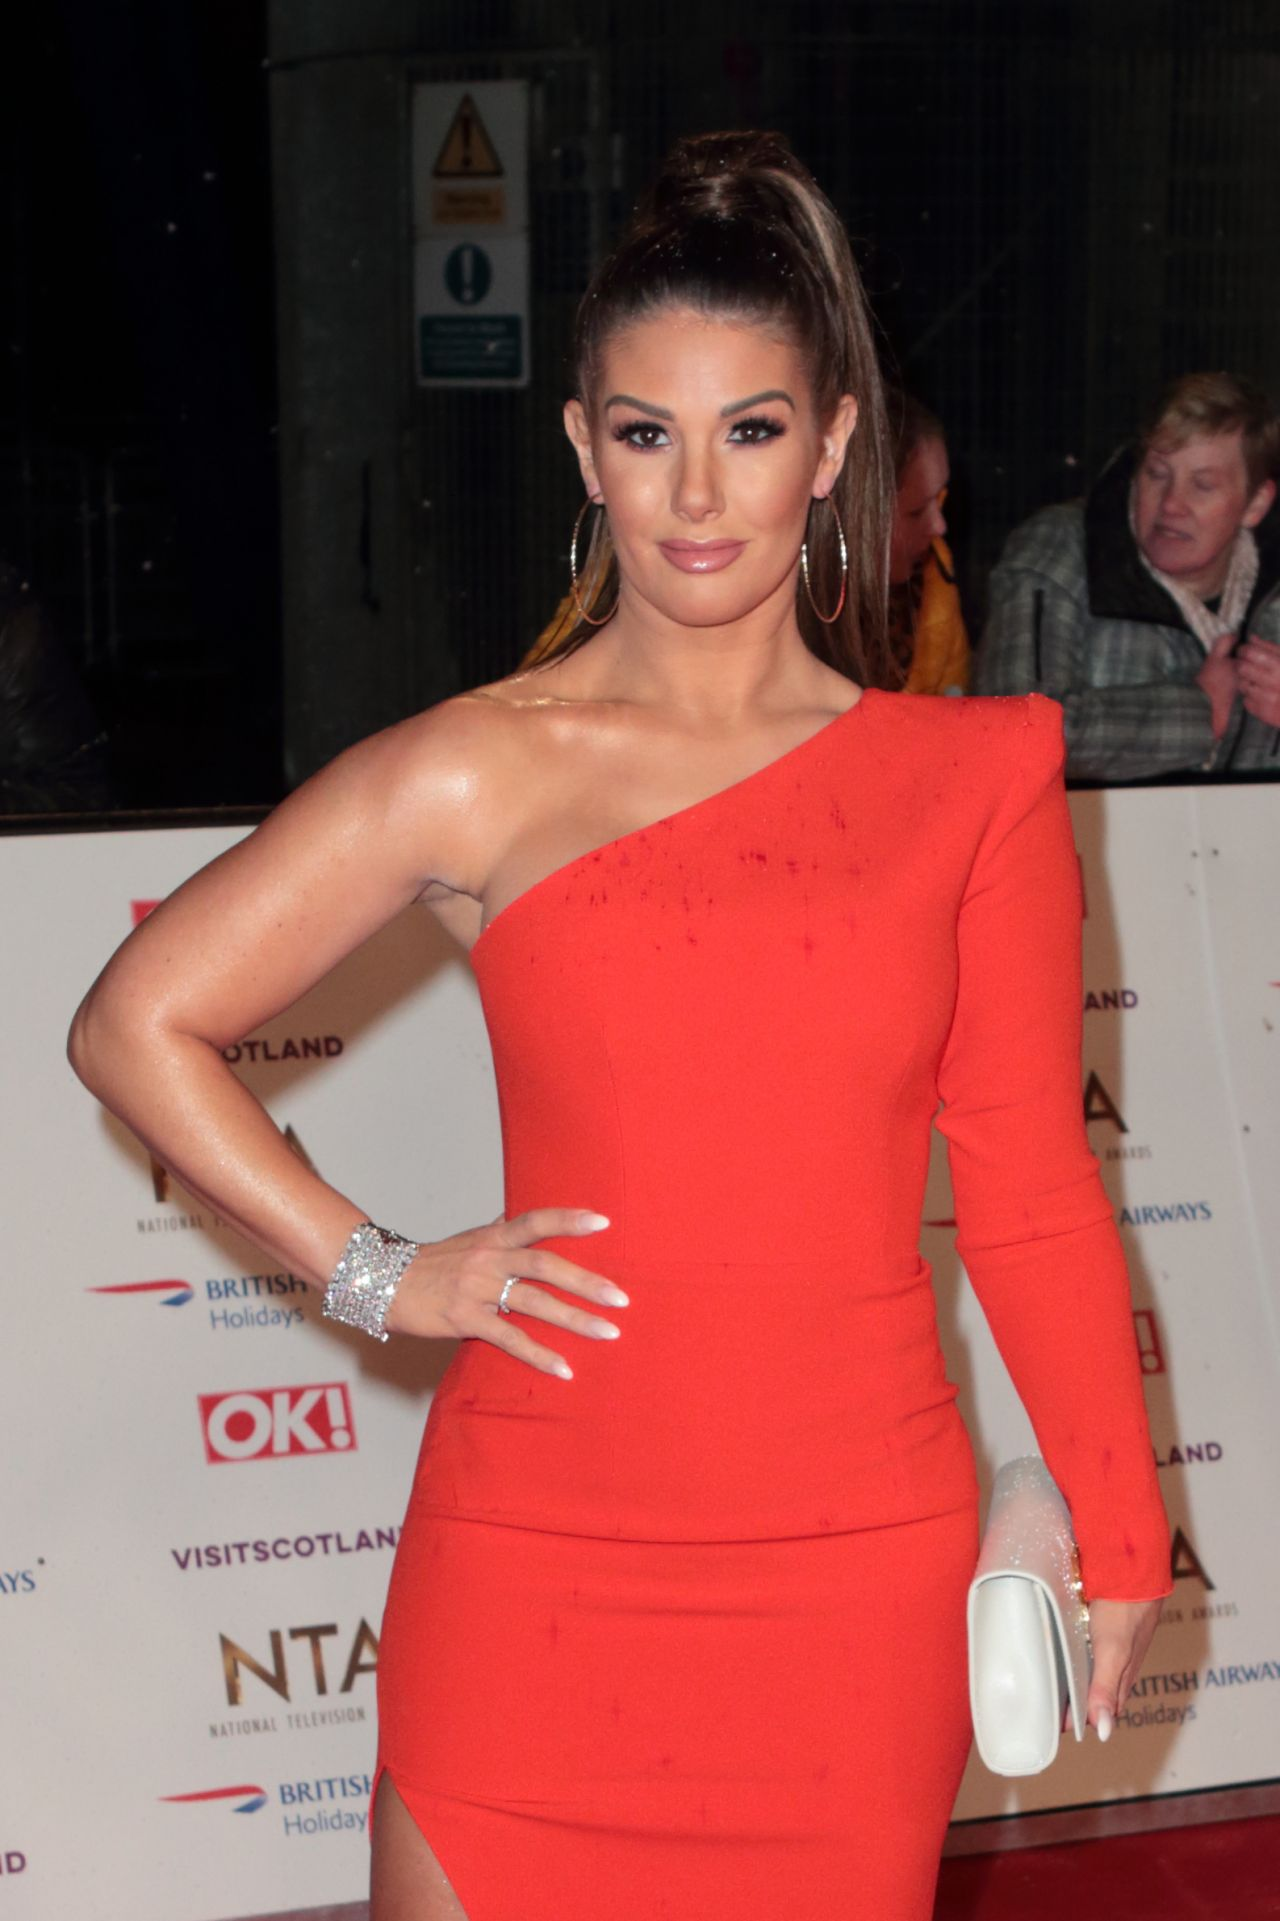 rebekah vardy - photo #17